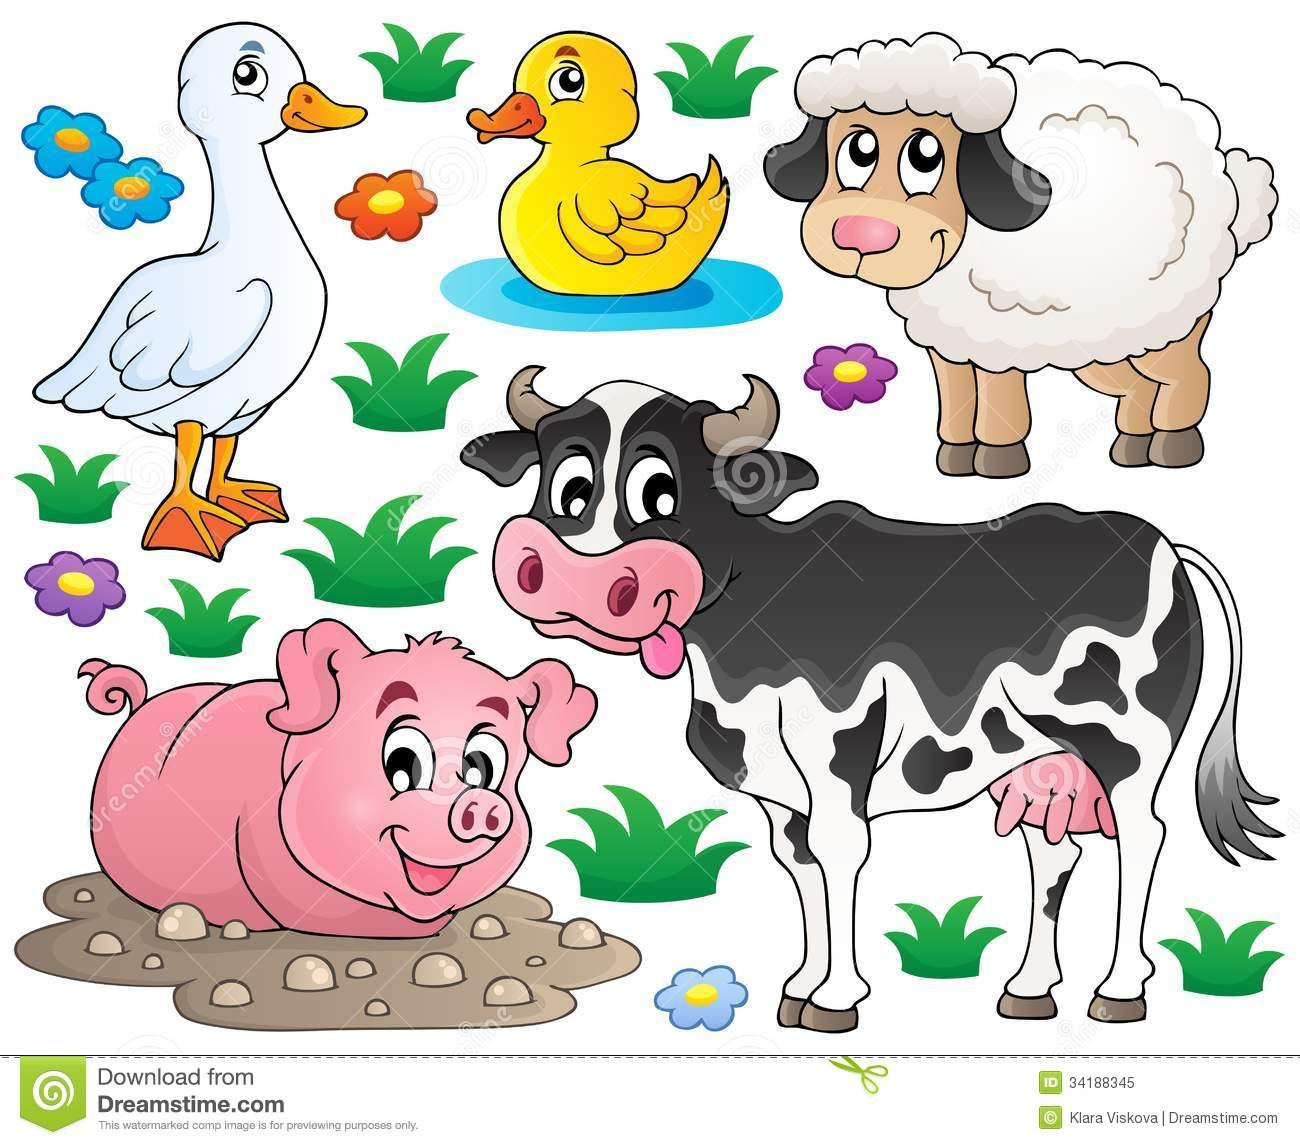 25+ Free Farm Animal Clipart | Clipartlook - Free Printable Farm Animal Clipart